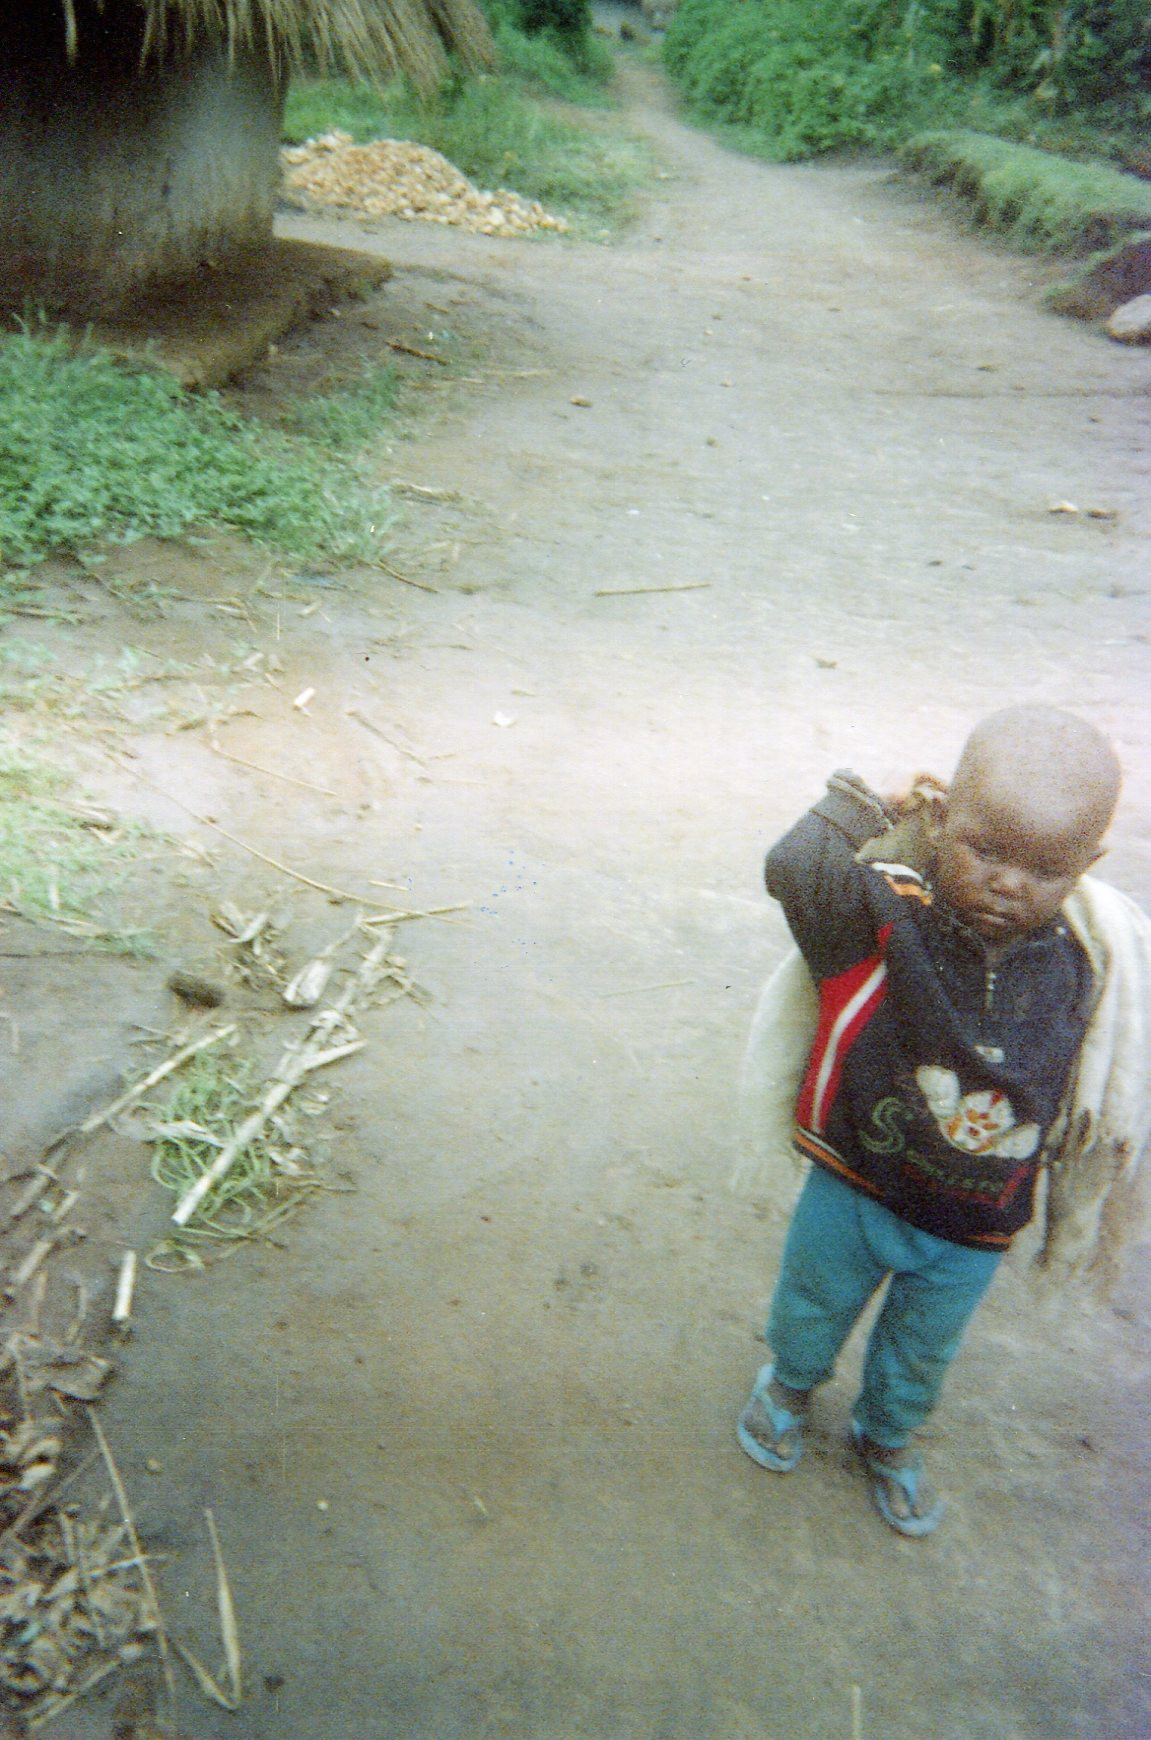 This child is forgotten and abandoned in the village following the war.